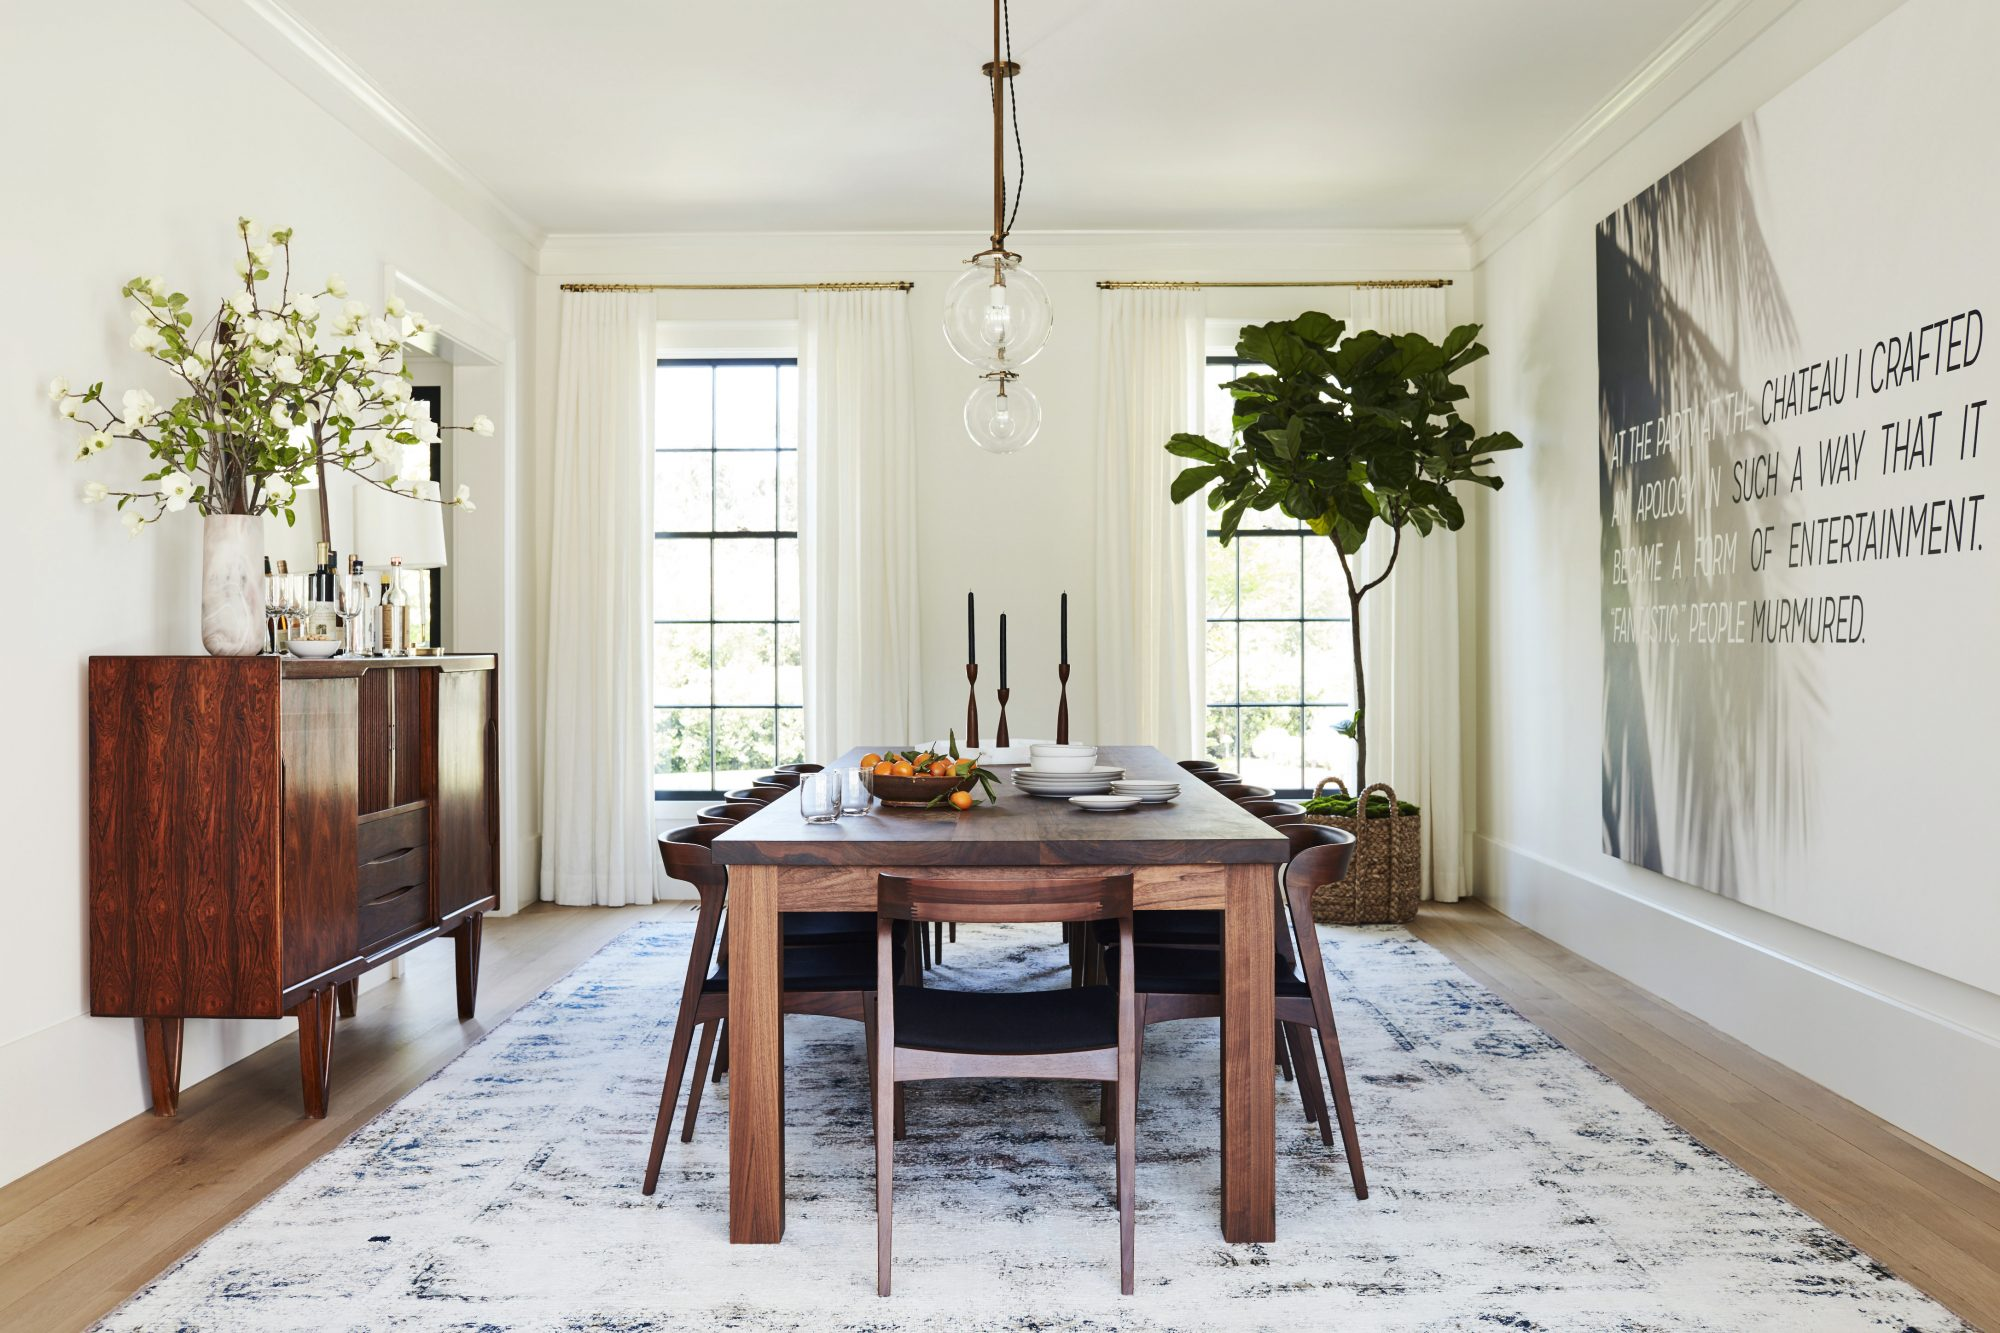 Jennifer Meyer house tour for One Kings Lane, photographed by Tony Vu